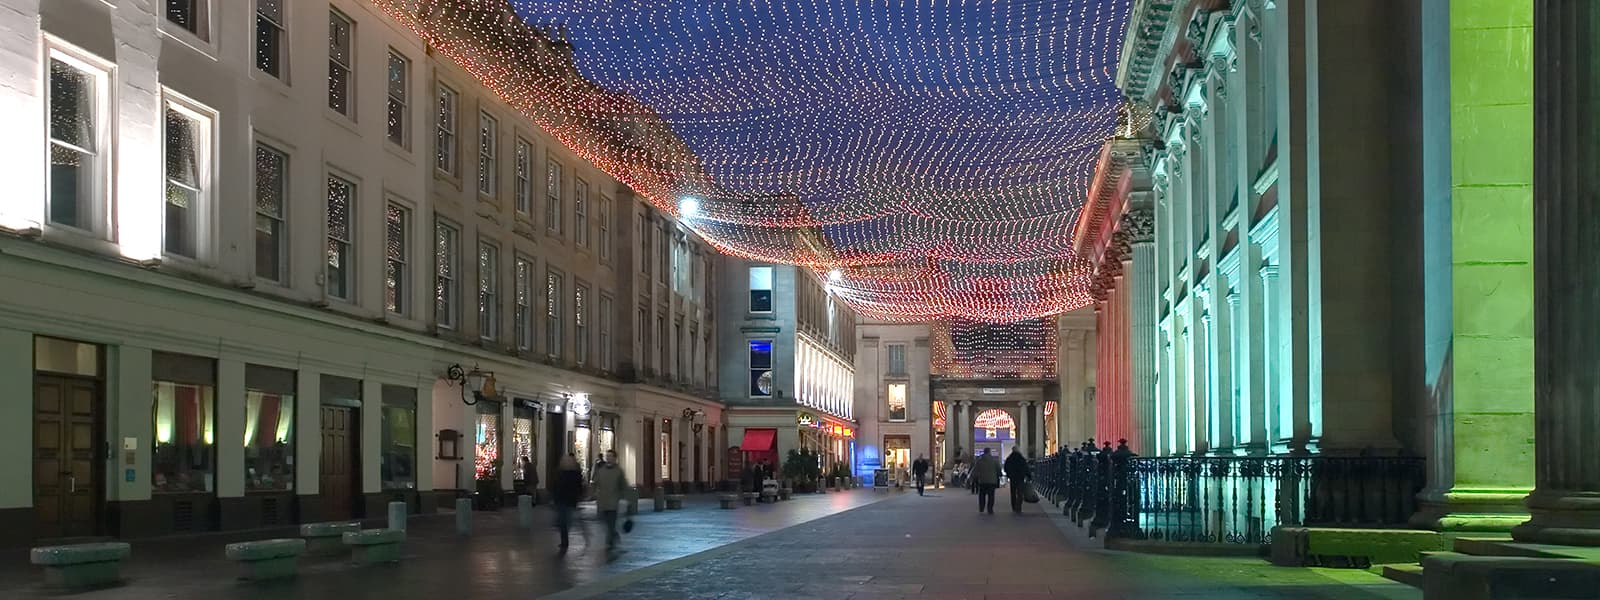 Royal Exchange Square at night